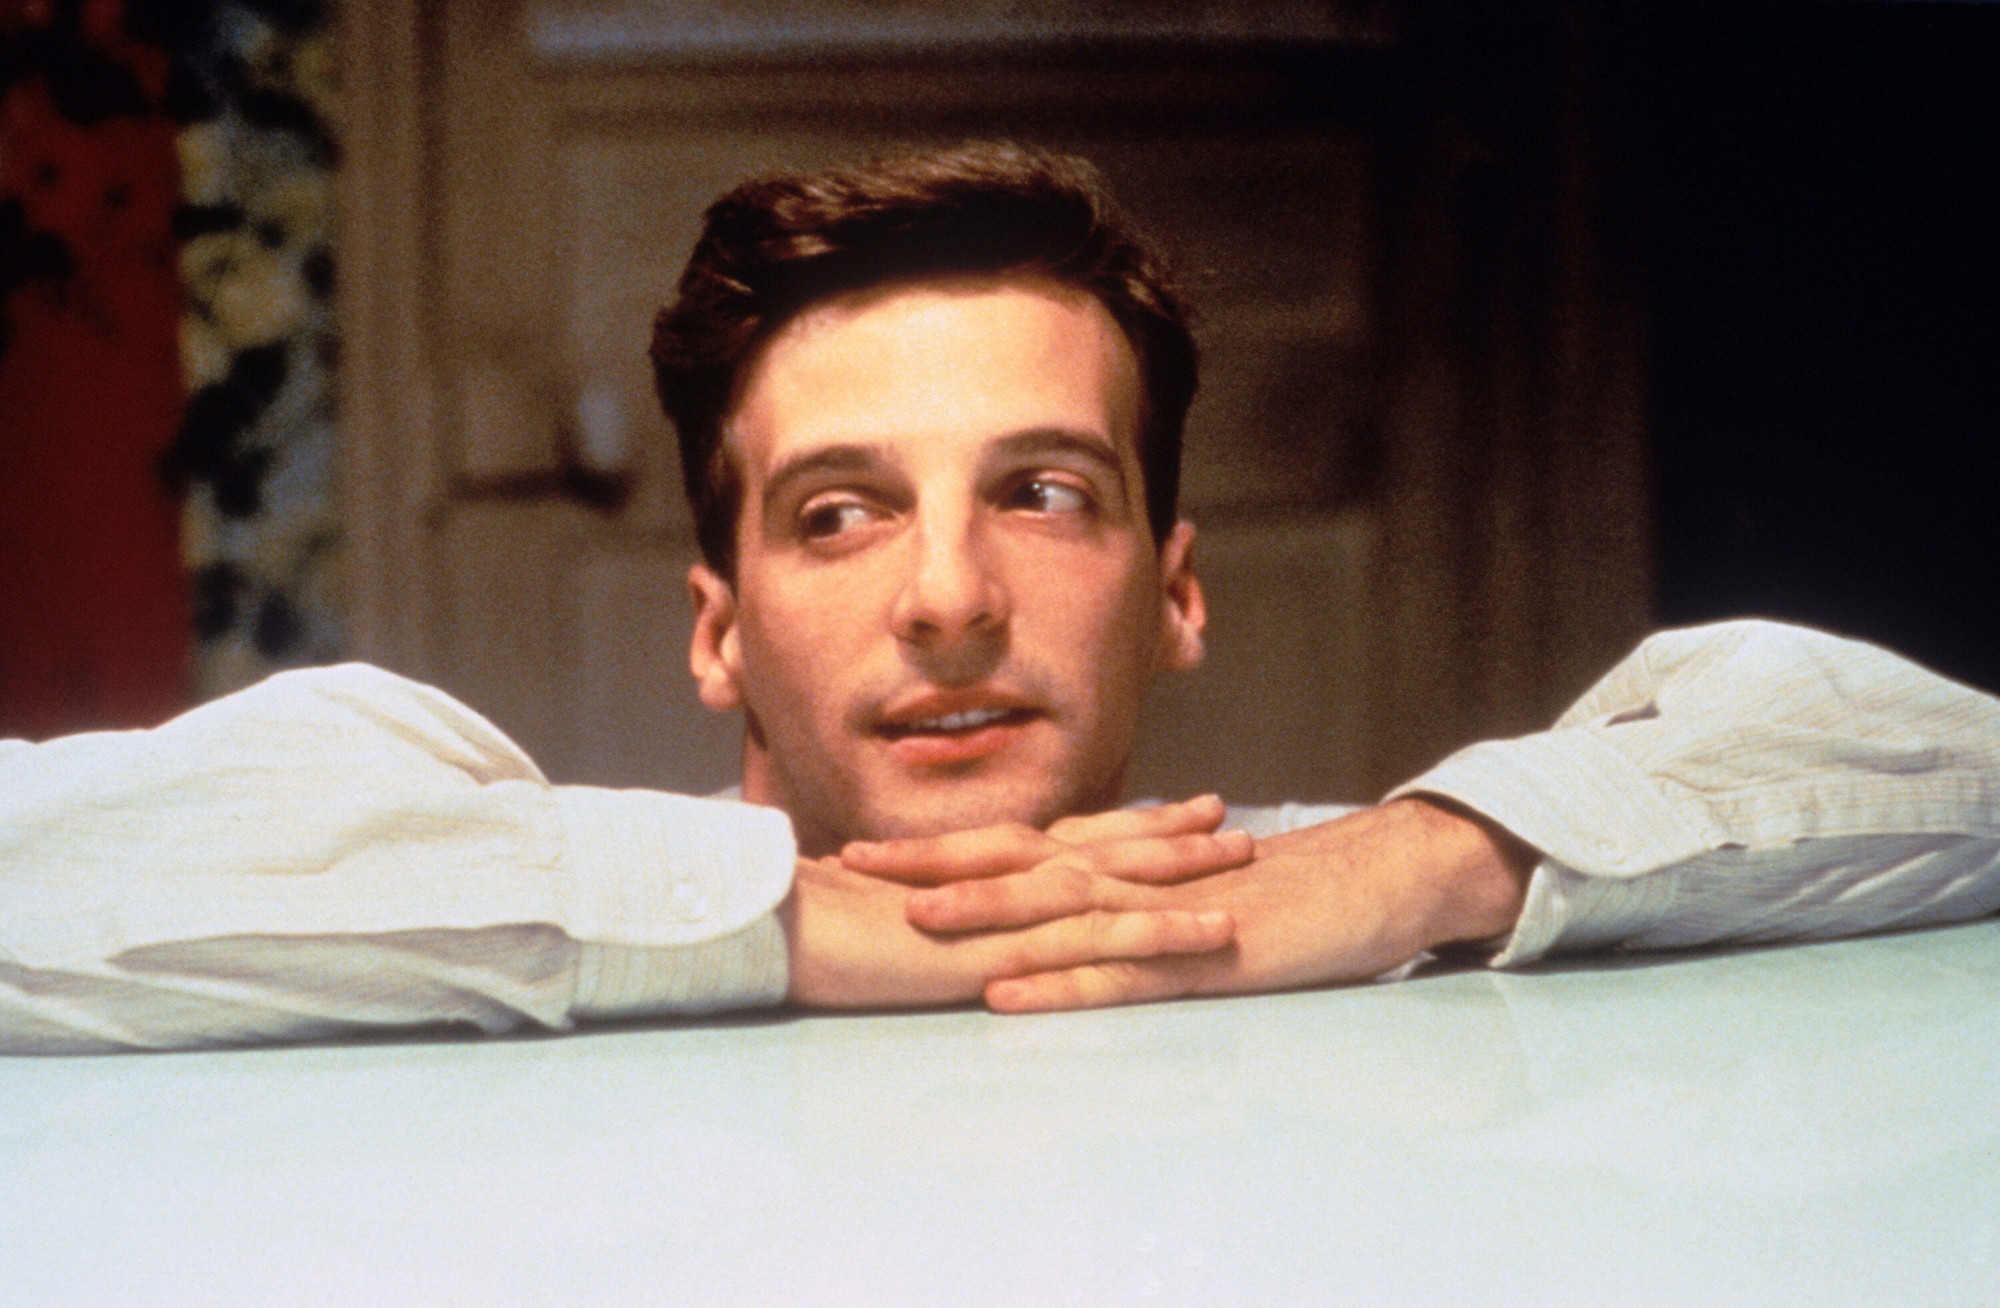 A Self-Made Hero. 1996. France. Directed by Jacques Audiard. Courtesy Strand Releasing/Photofest